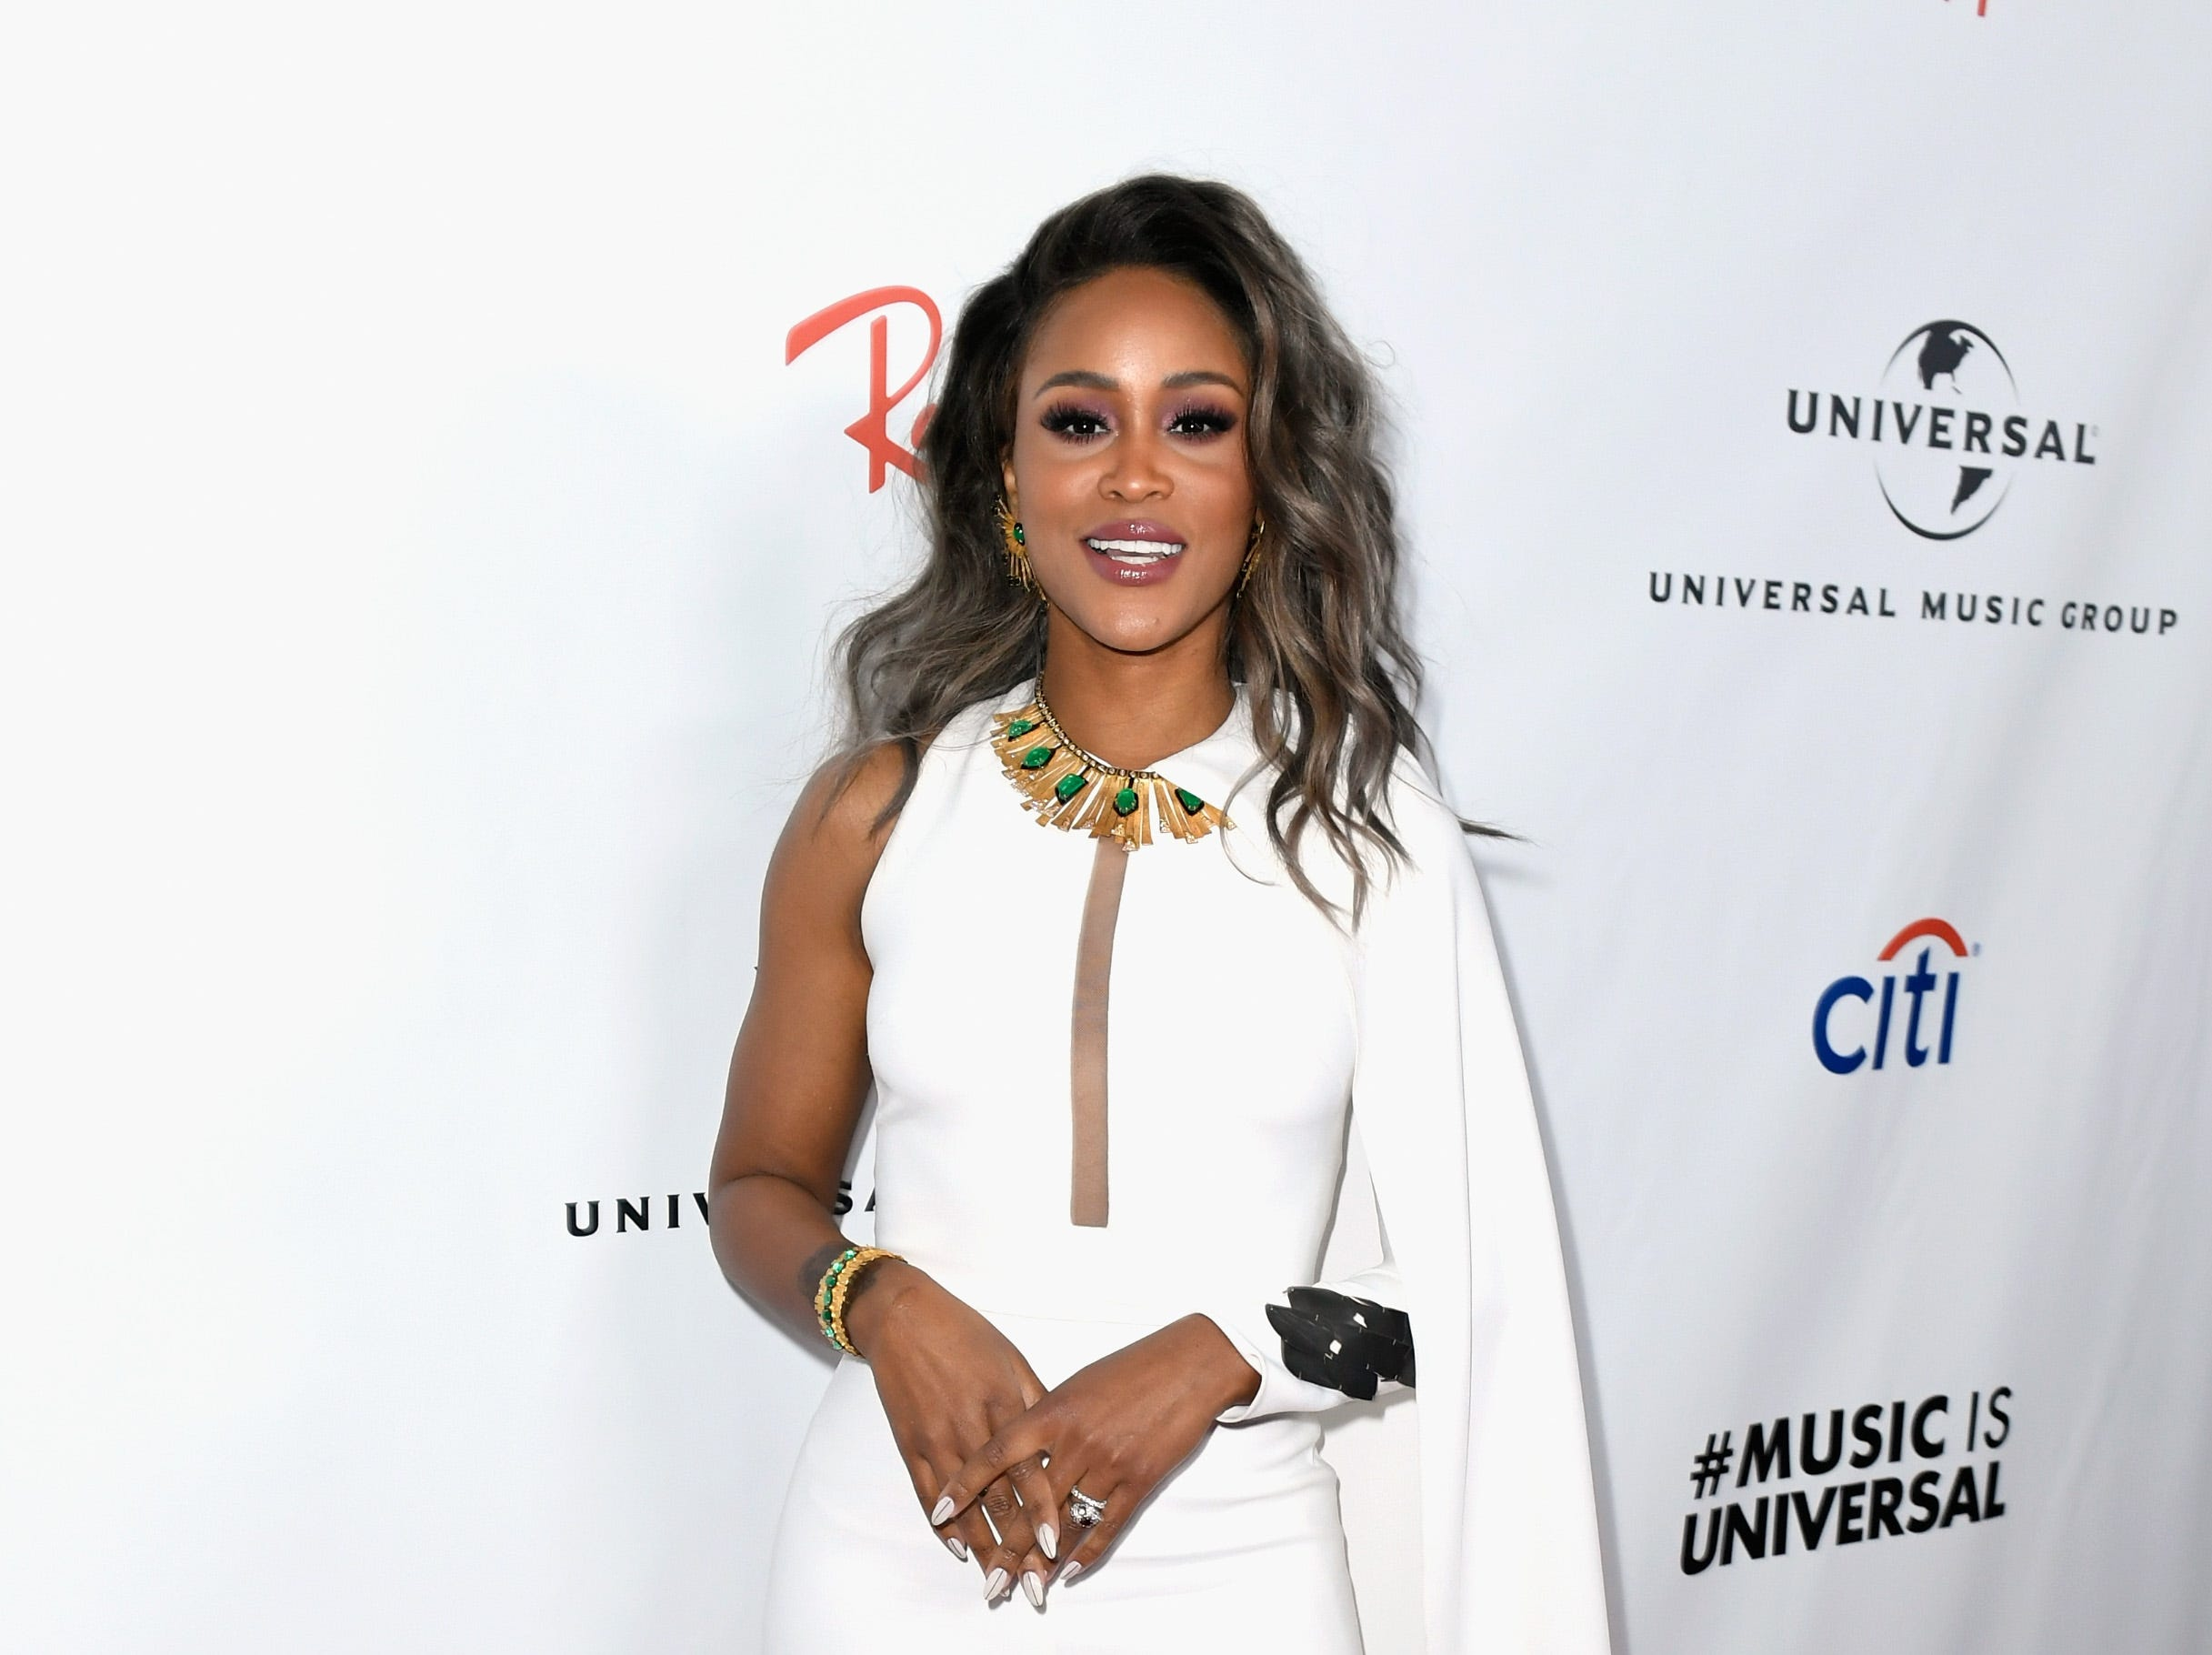 LOS ANGELES, CA - FEBRUARY 10: Eve attends Universal Music Group's 2019 After Party Presented by Citi Celebrates The 61st Annual Grammy Awards on February 9, 2019 in Los Angeles, California.  (Photo by Timothy Norris/Getty Images for for Universal Music Group ) ORG XMIT: 775289866 ORIG FILE ID: 1097767224